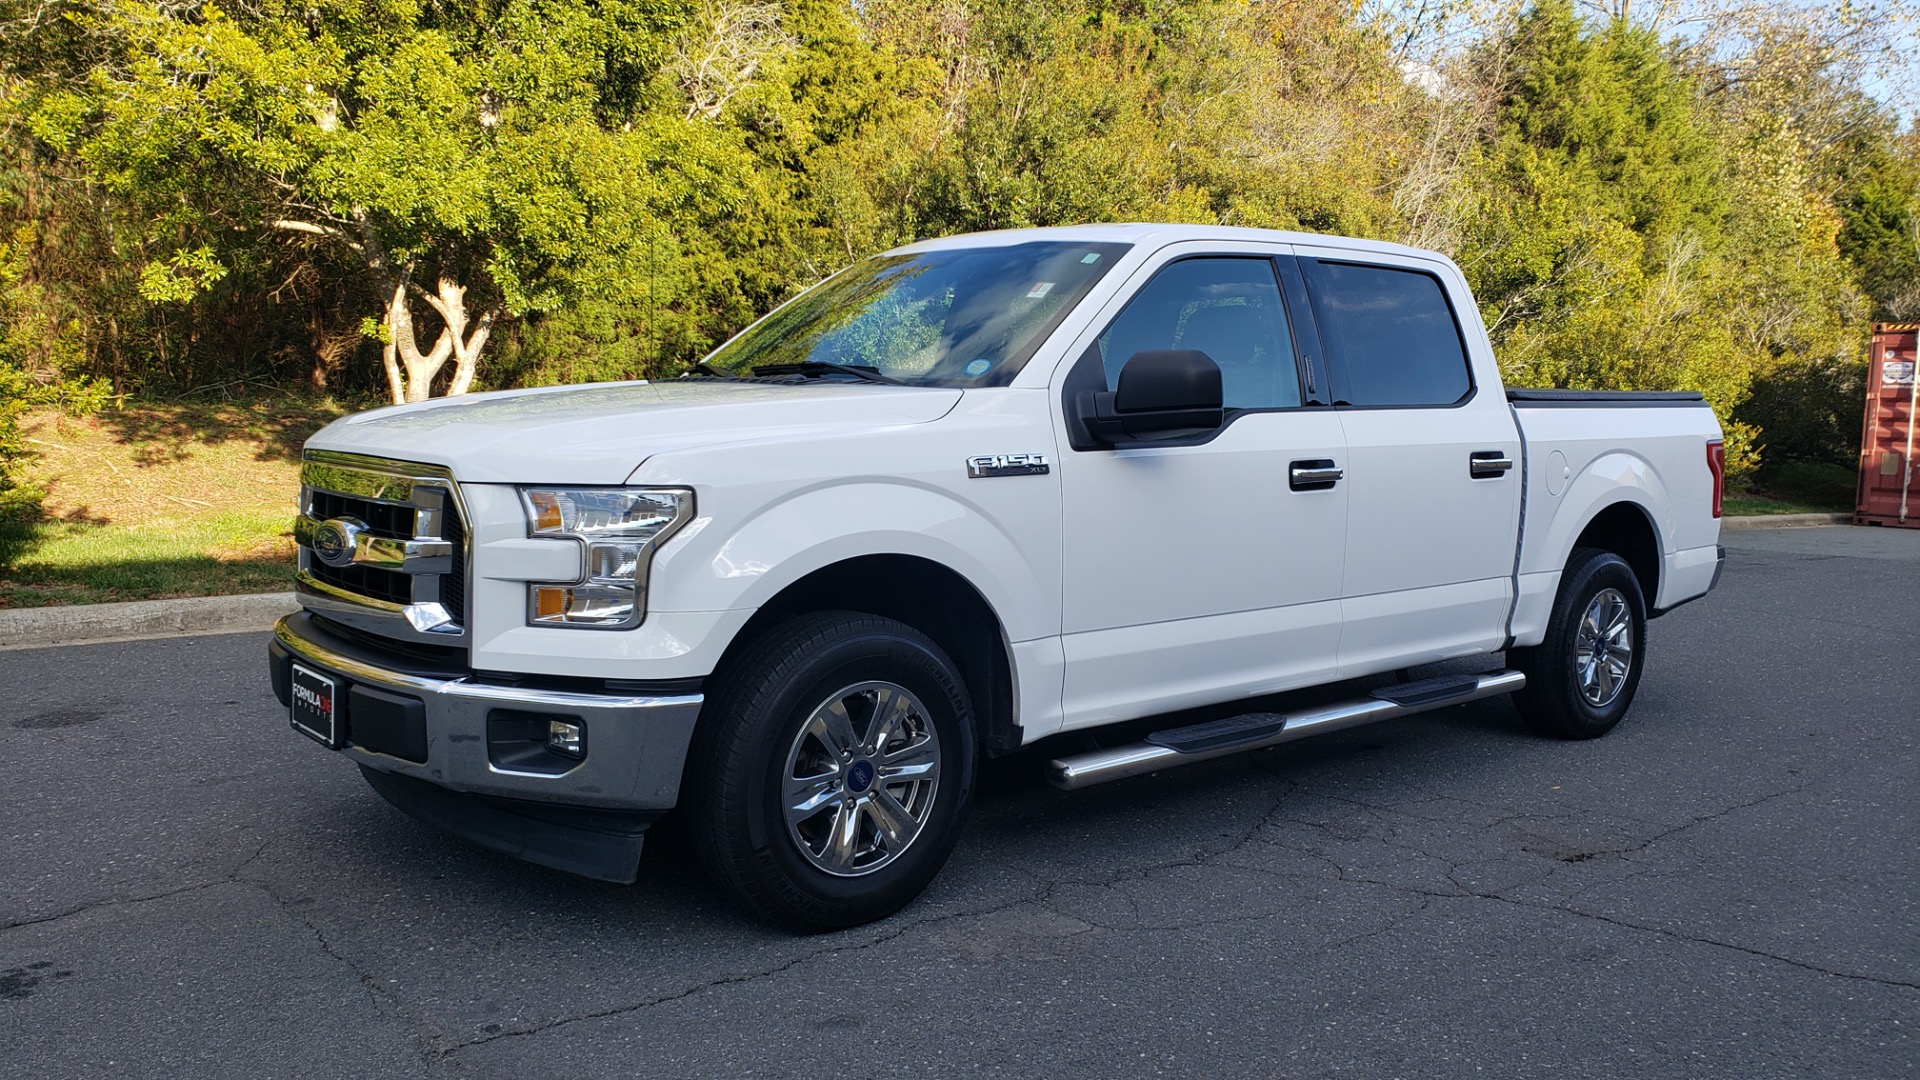 Used 2017 Ford F-150 XLT 4x2 SUPERCREW / V6 / AUTO / 145 WB / 5.6 BED for sale Sold at Formula Imports in Charlotte NC 28227 1